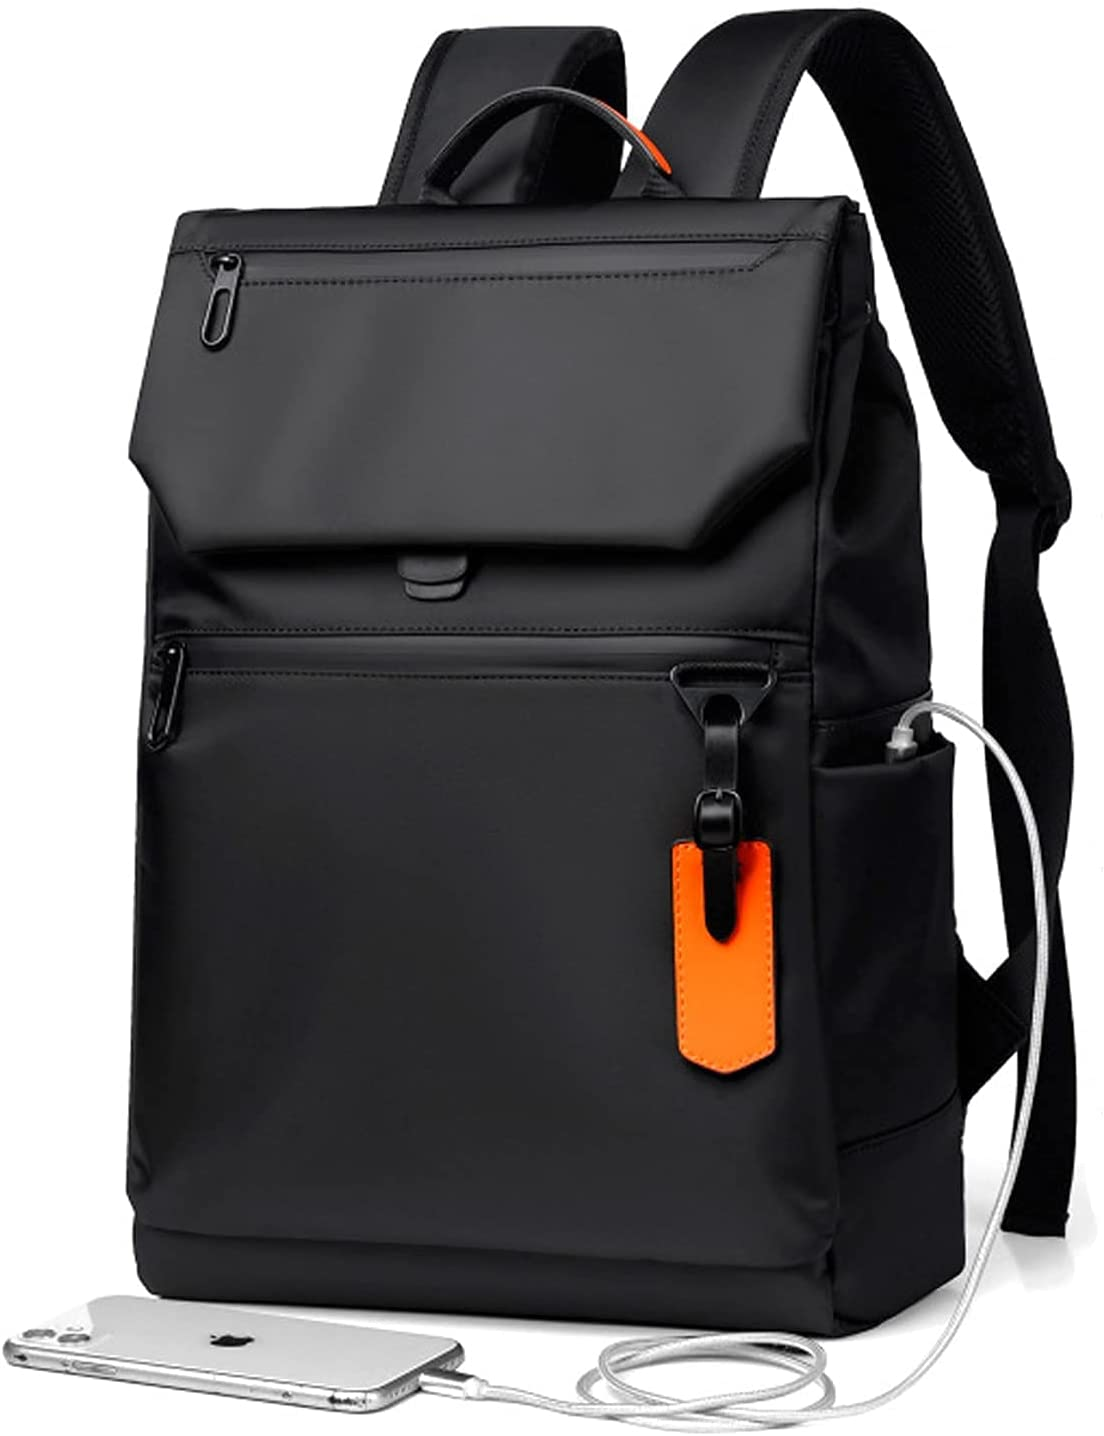 AiPool Travel Laptop Backpack Business Men's Casual Backback Large Capacity Oxford Cloth School Bag (Black) : Electronics